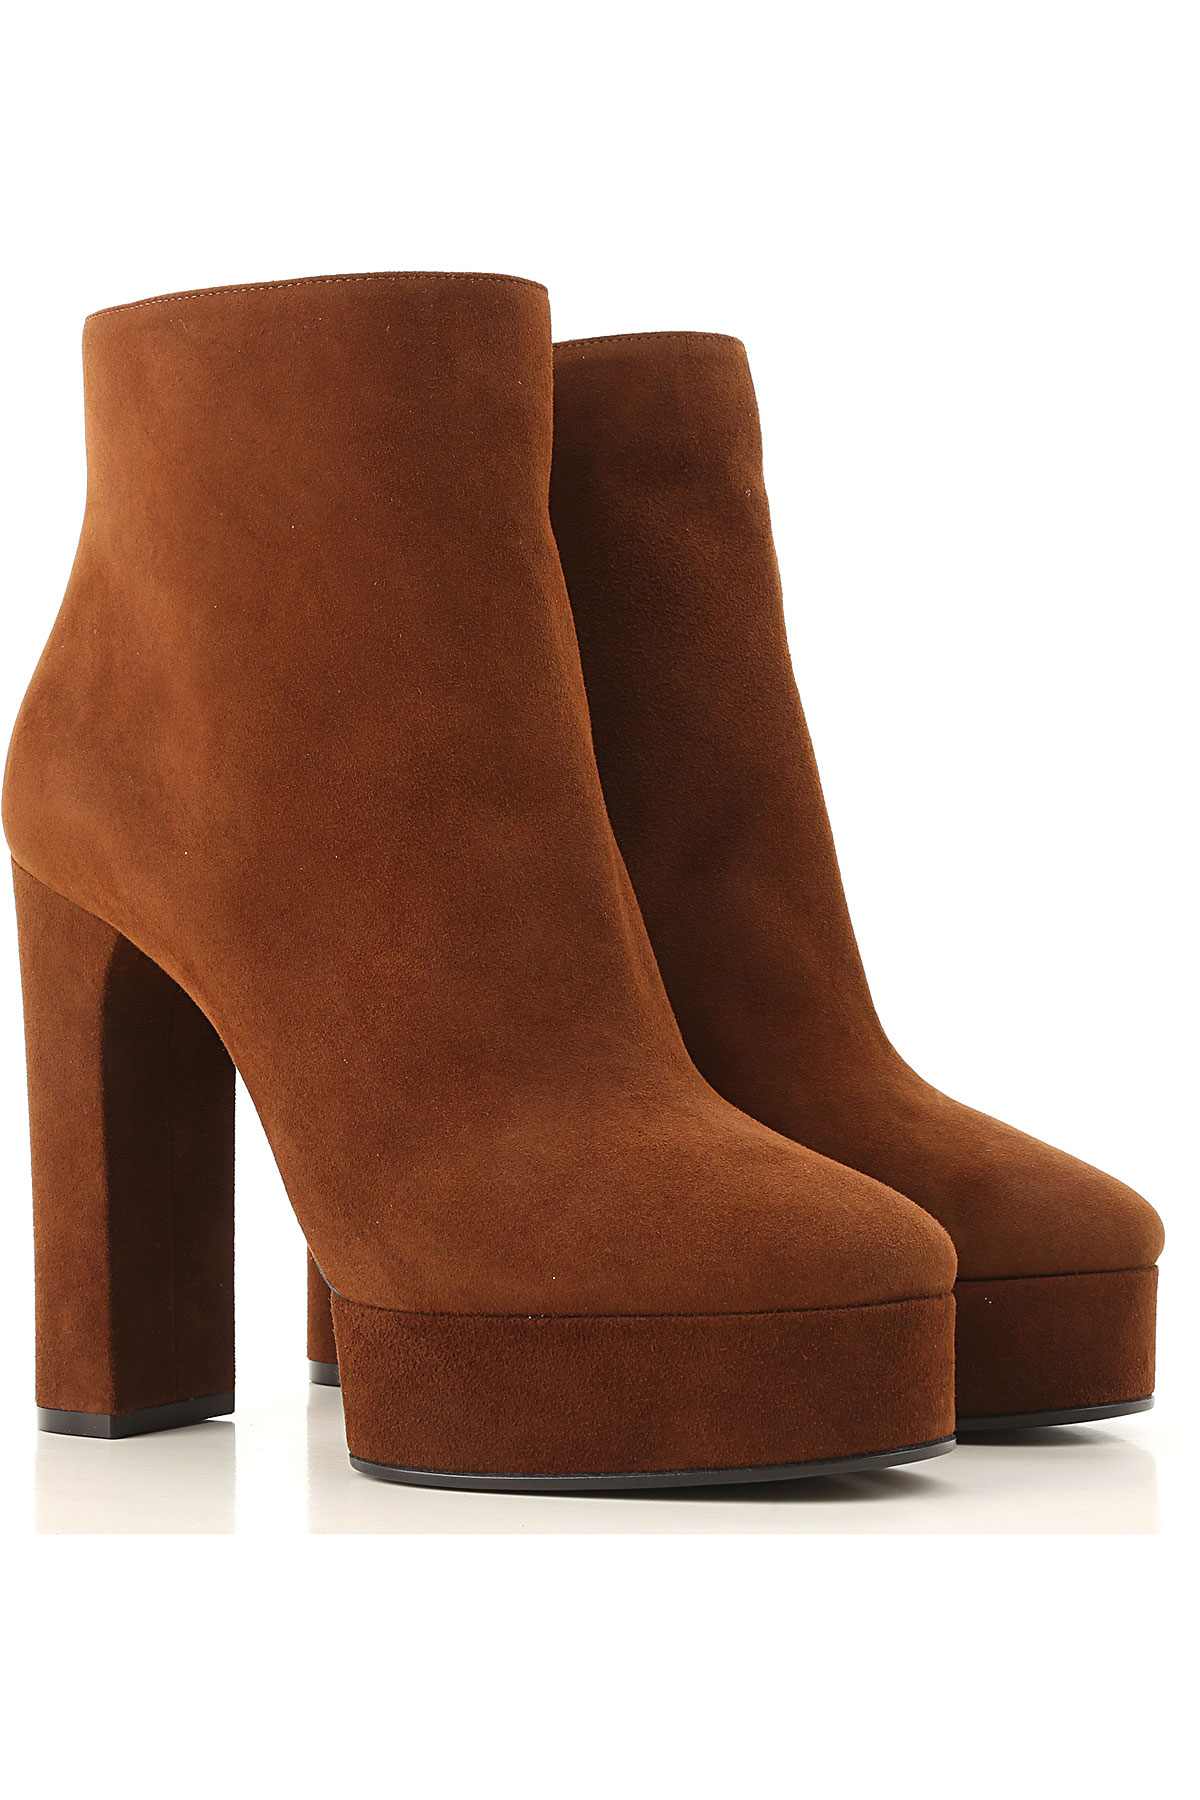 Casadei Boots for Women, Booties On Sale, Tobacco, suede, 2019, 10 8 8.5 9 9.5